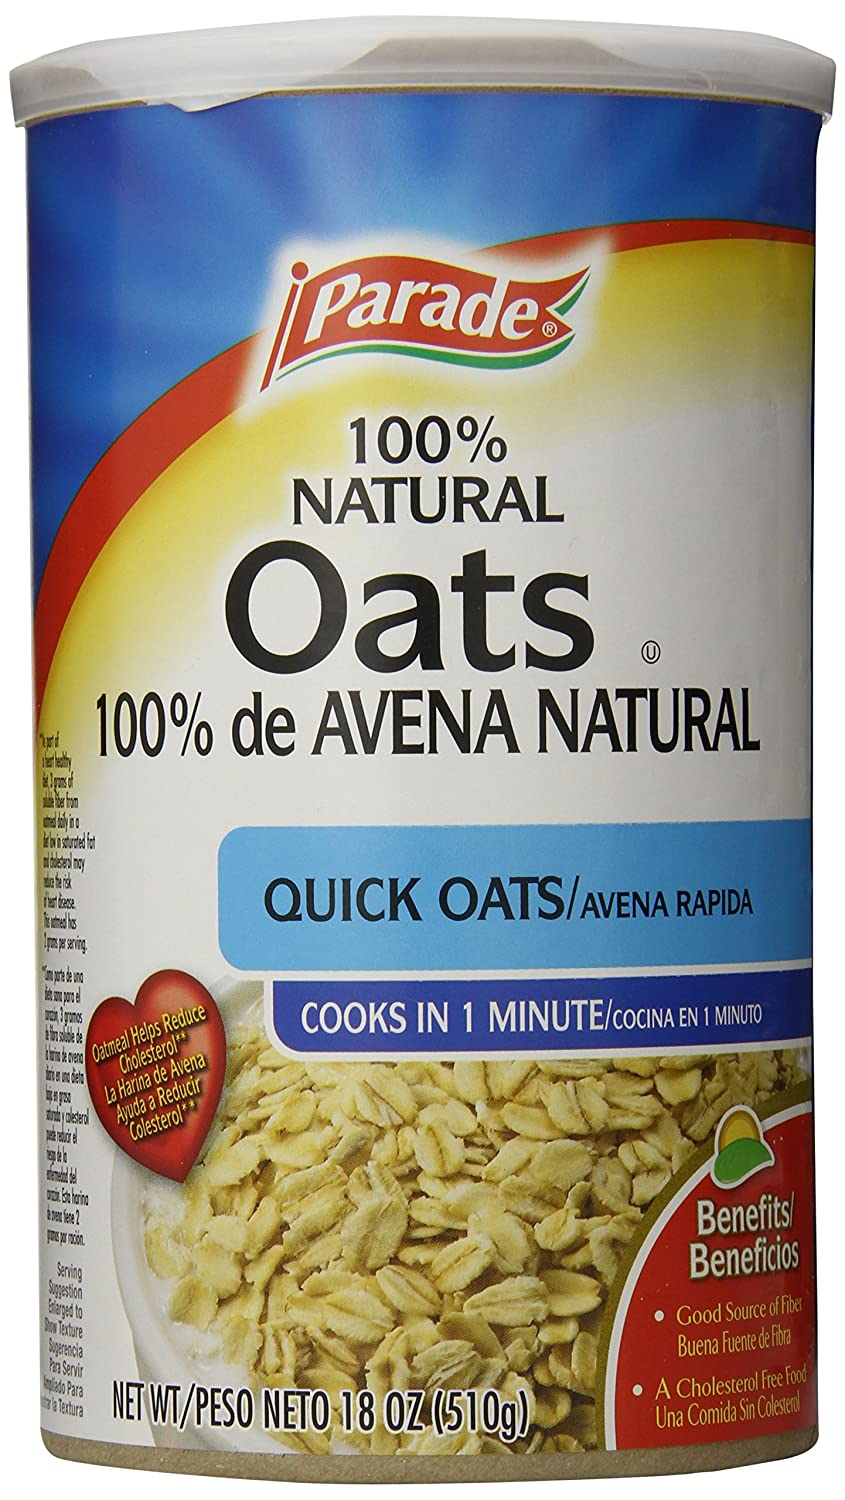 Parade Quick Oats, 18 Ounce (Pack of 12): Amazon.com: Grocery & Gourmet Food